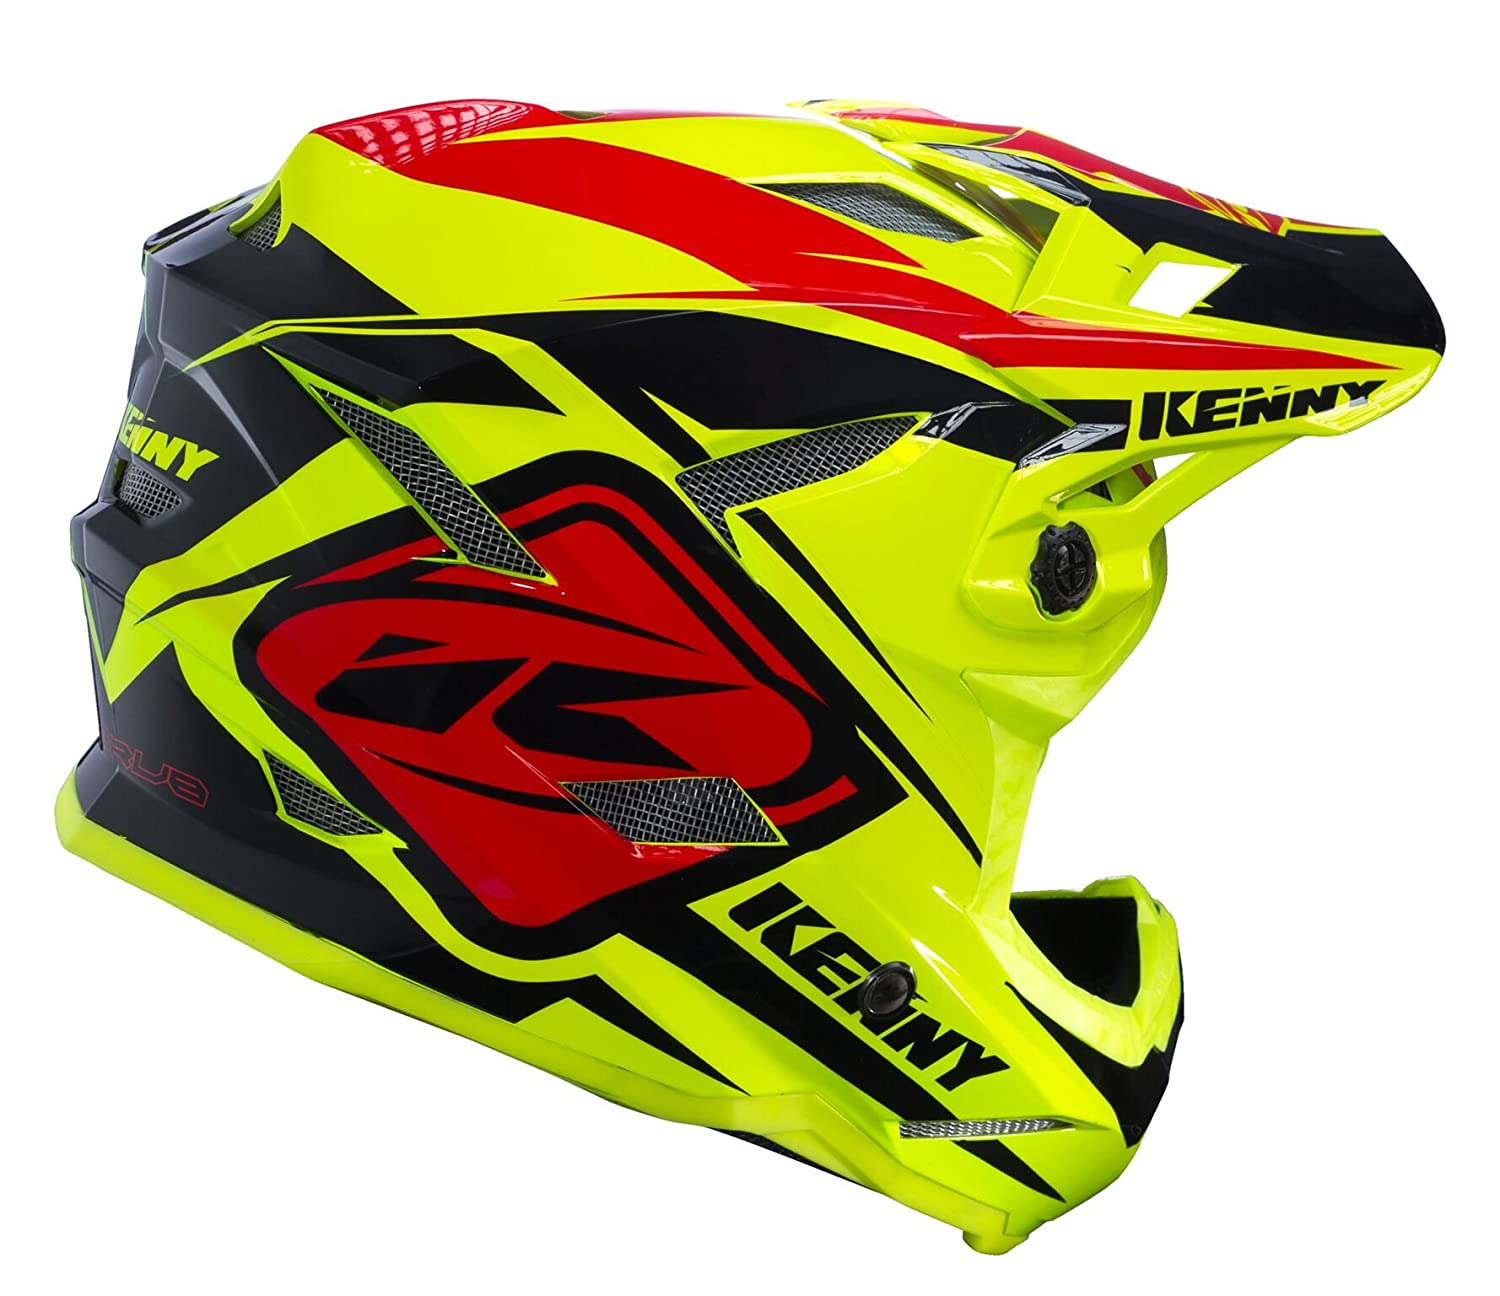 Kenny Scrub Casco Mixto, Color Jaune Fluo/Noir/Rouge, tamaño Medium: Amazon.es: Deportes y aire libre